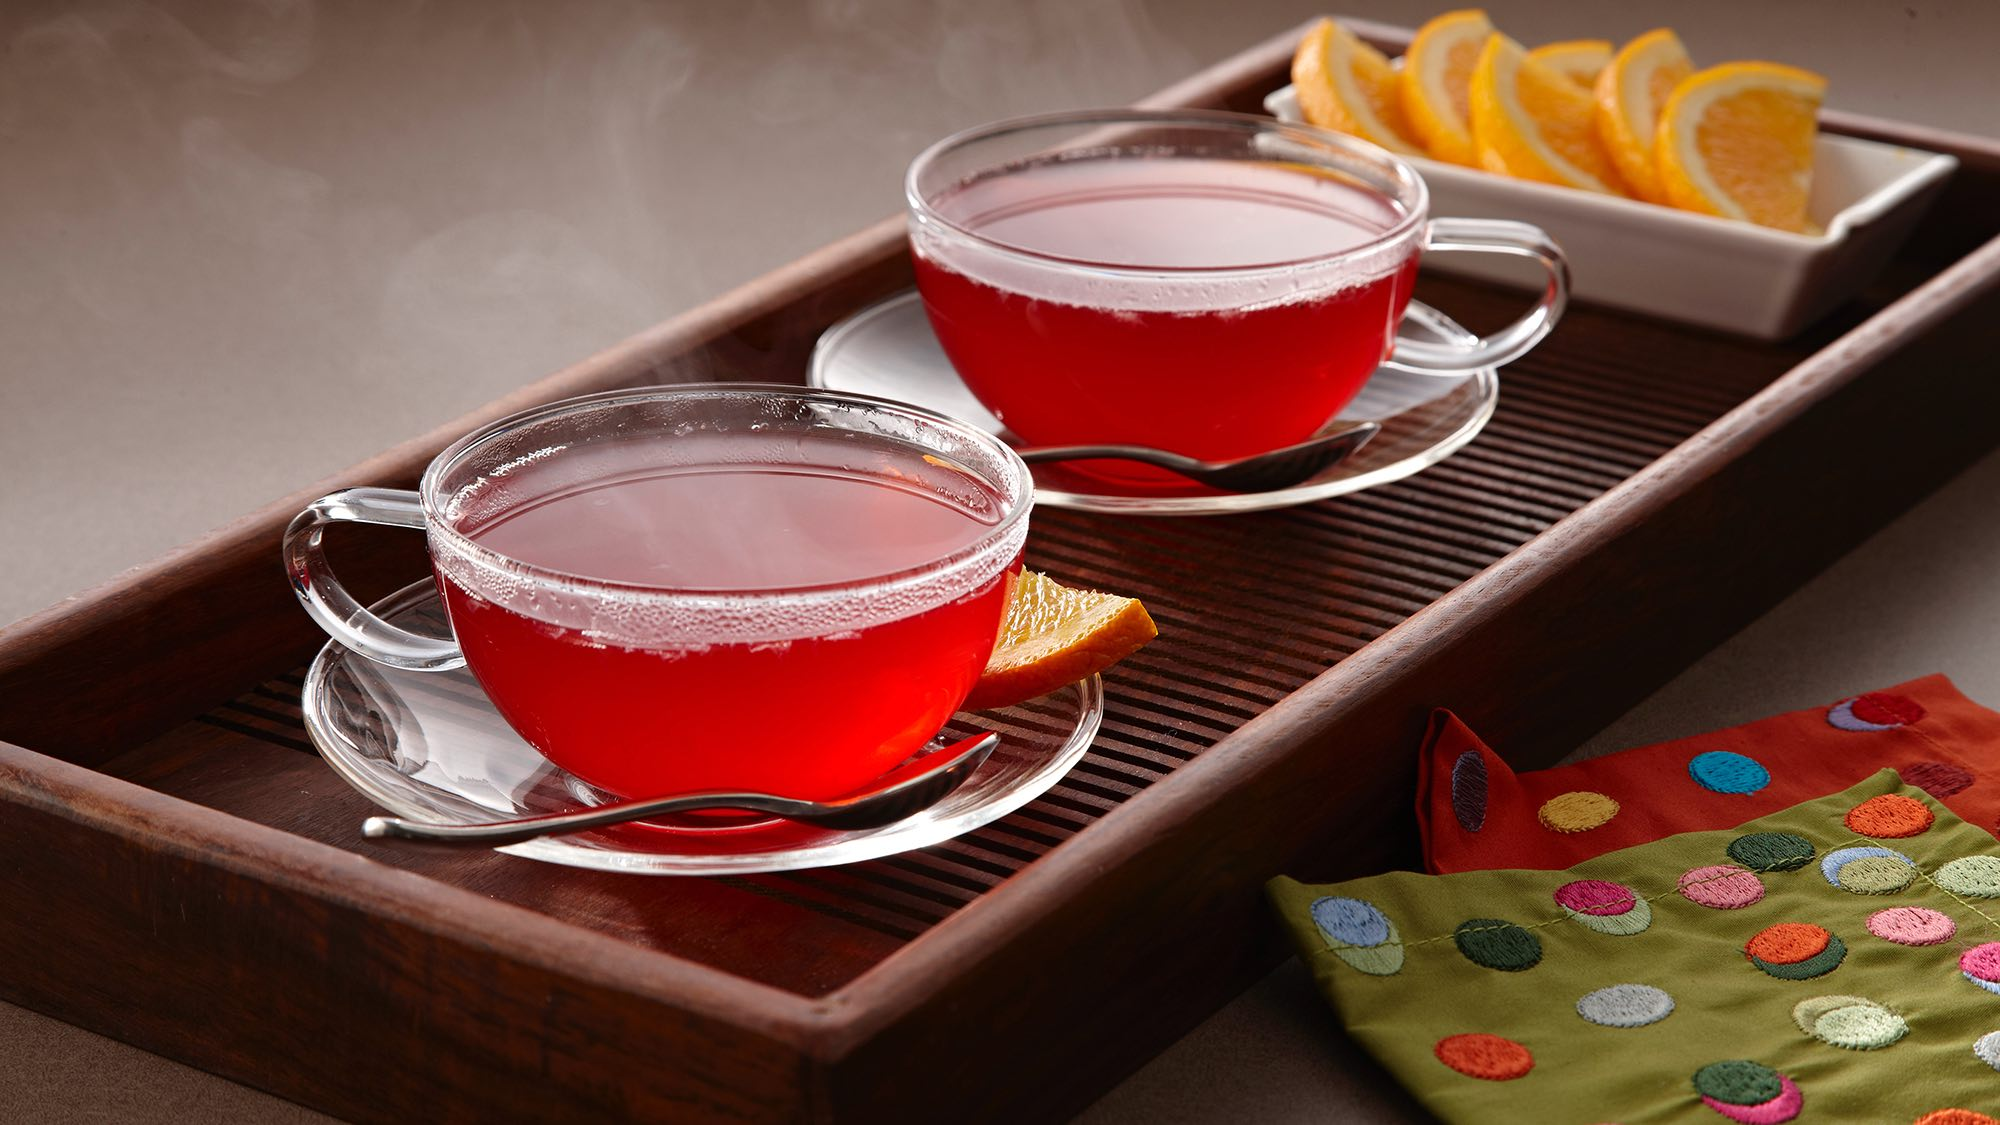 McCormick Warm Spiced Cranberry Punch